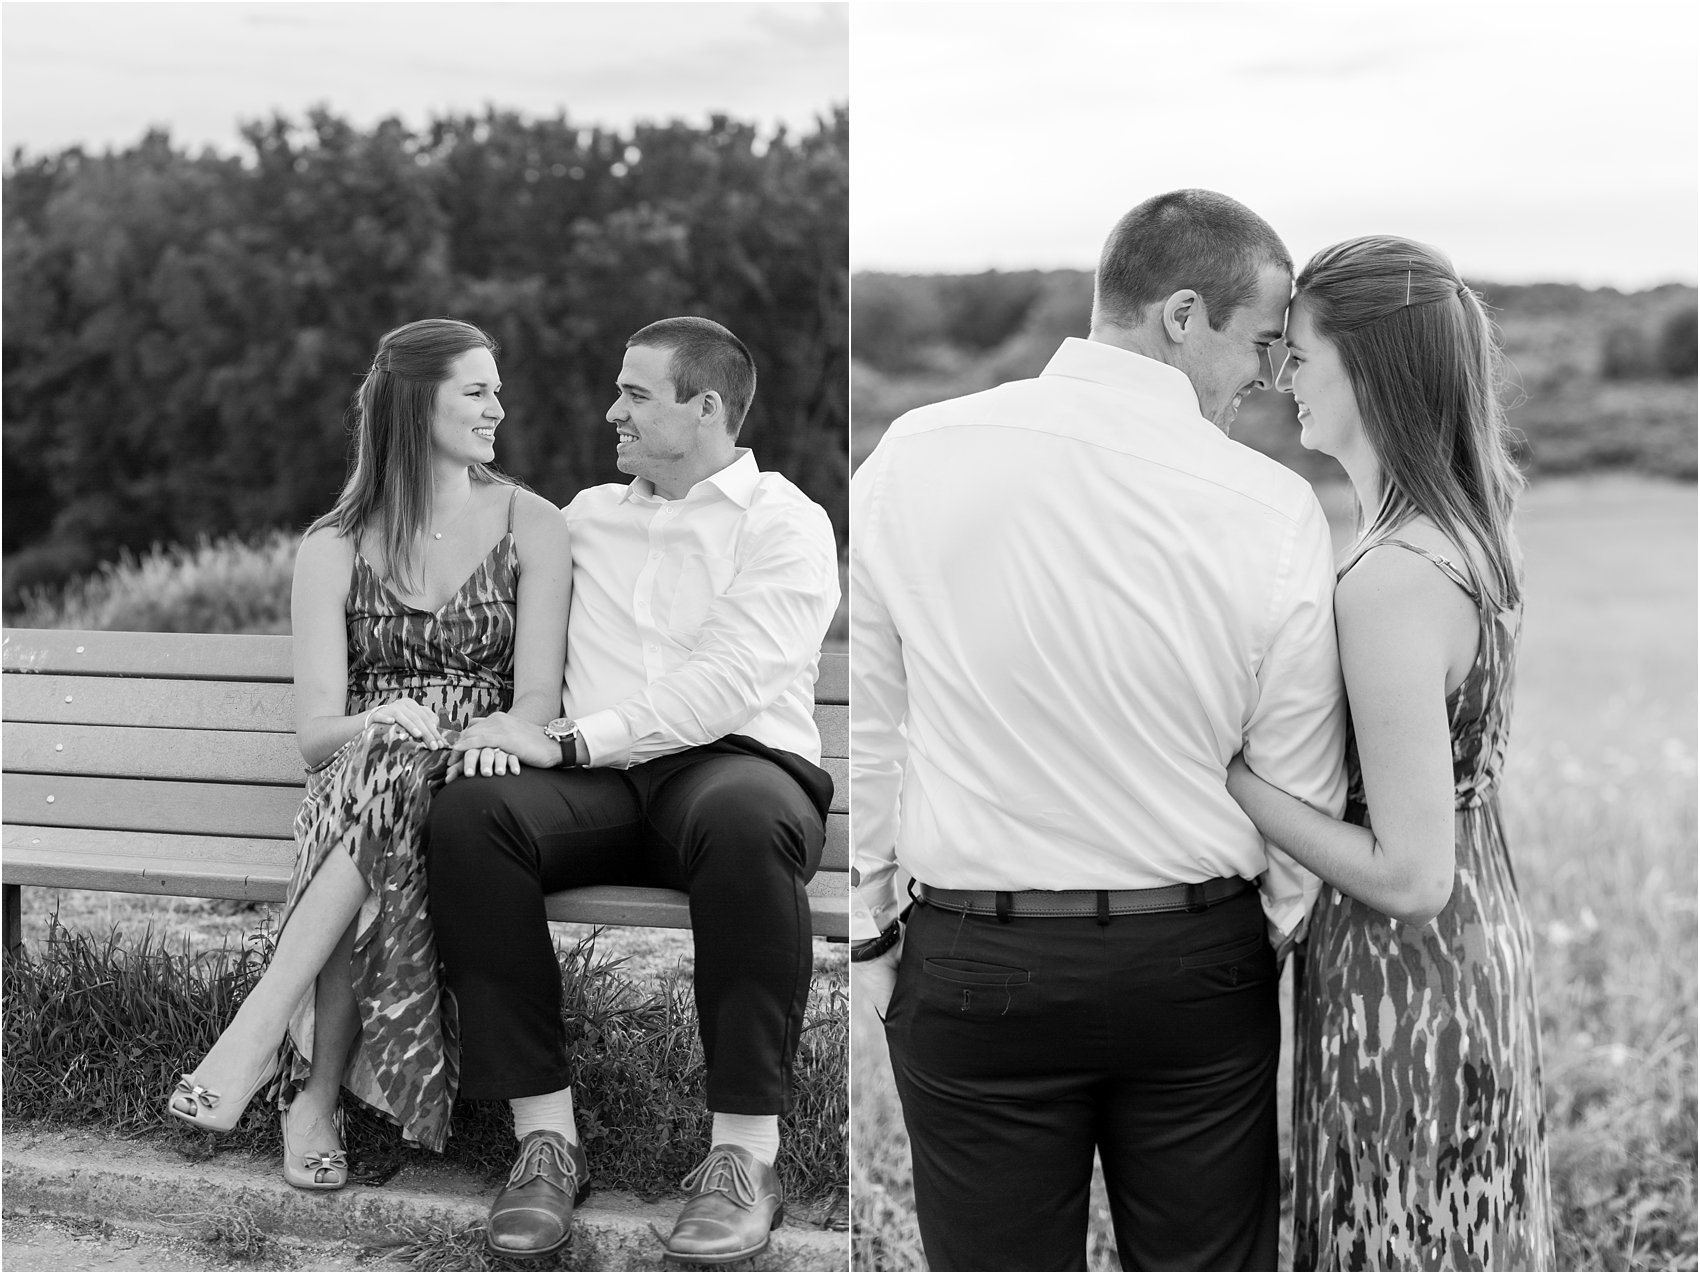 light-hearted-sunset-engagement-photos-at-the-beach-in-oregon-oh-by-courtney-carolyn-photography_0011.jpg